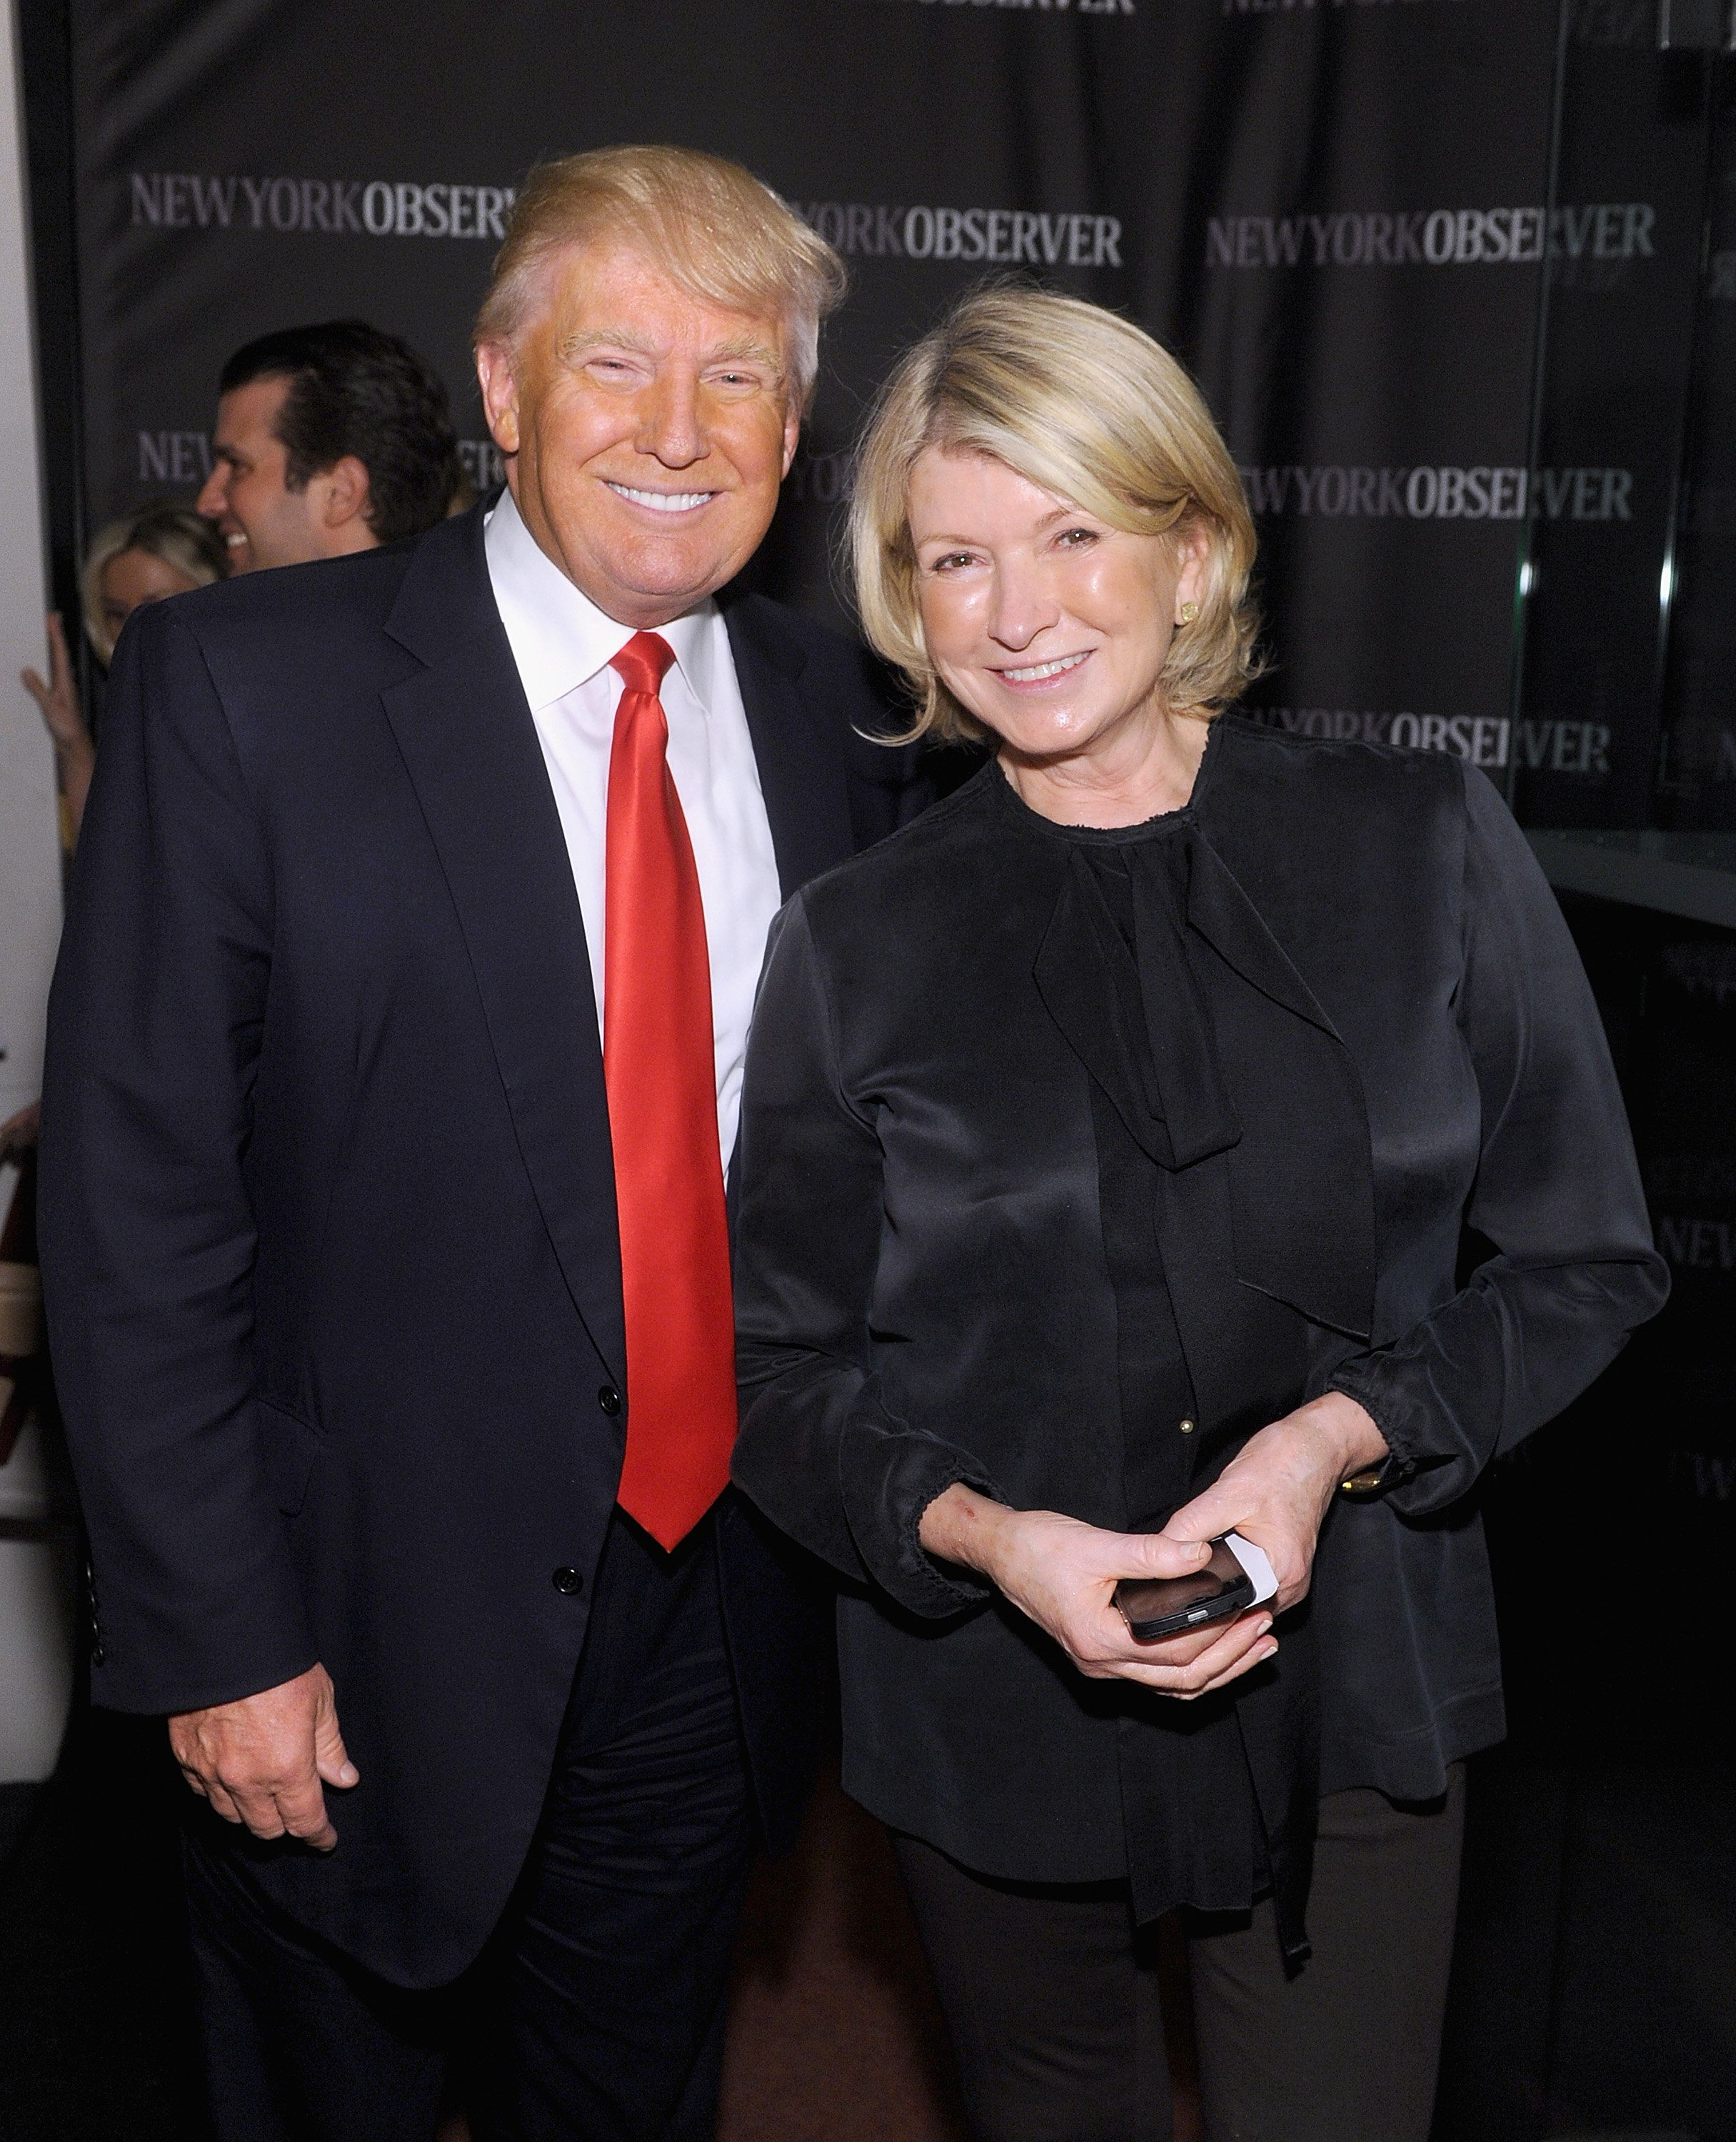 NEW YORK, NY - APRIL 01: Donald Trump and Martha Stewart attend The New York Observer Relaunch Event on April 1, 2014 in New York City.  (Photo by Jamie McCarthy/Getty Images)